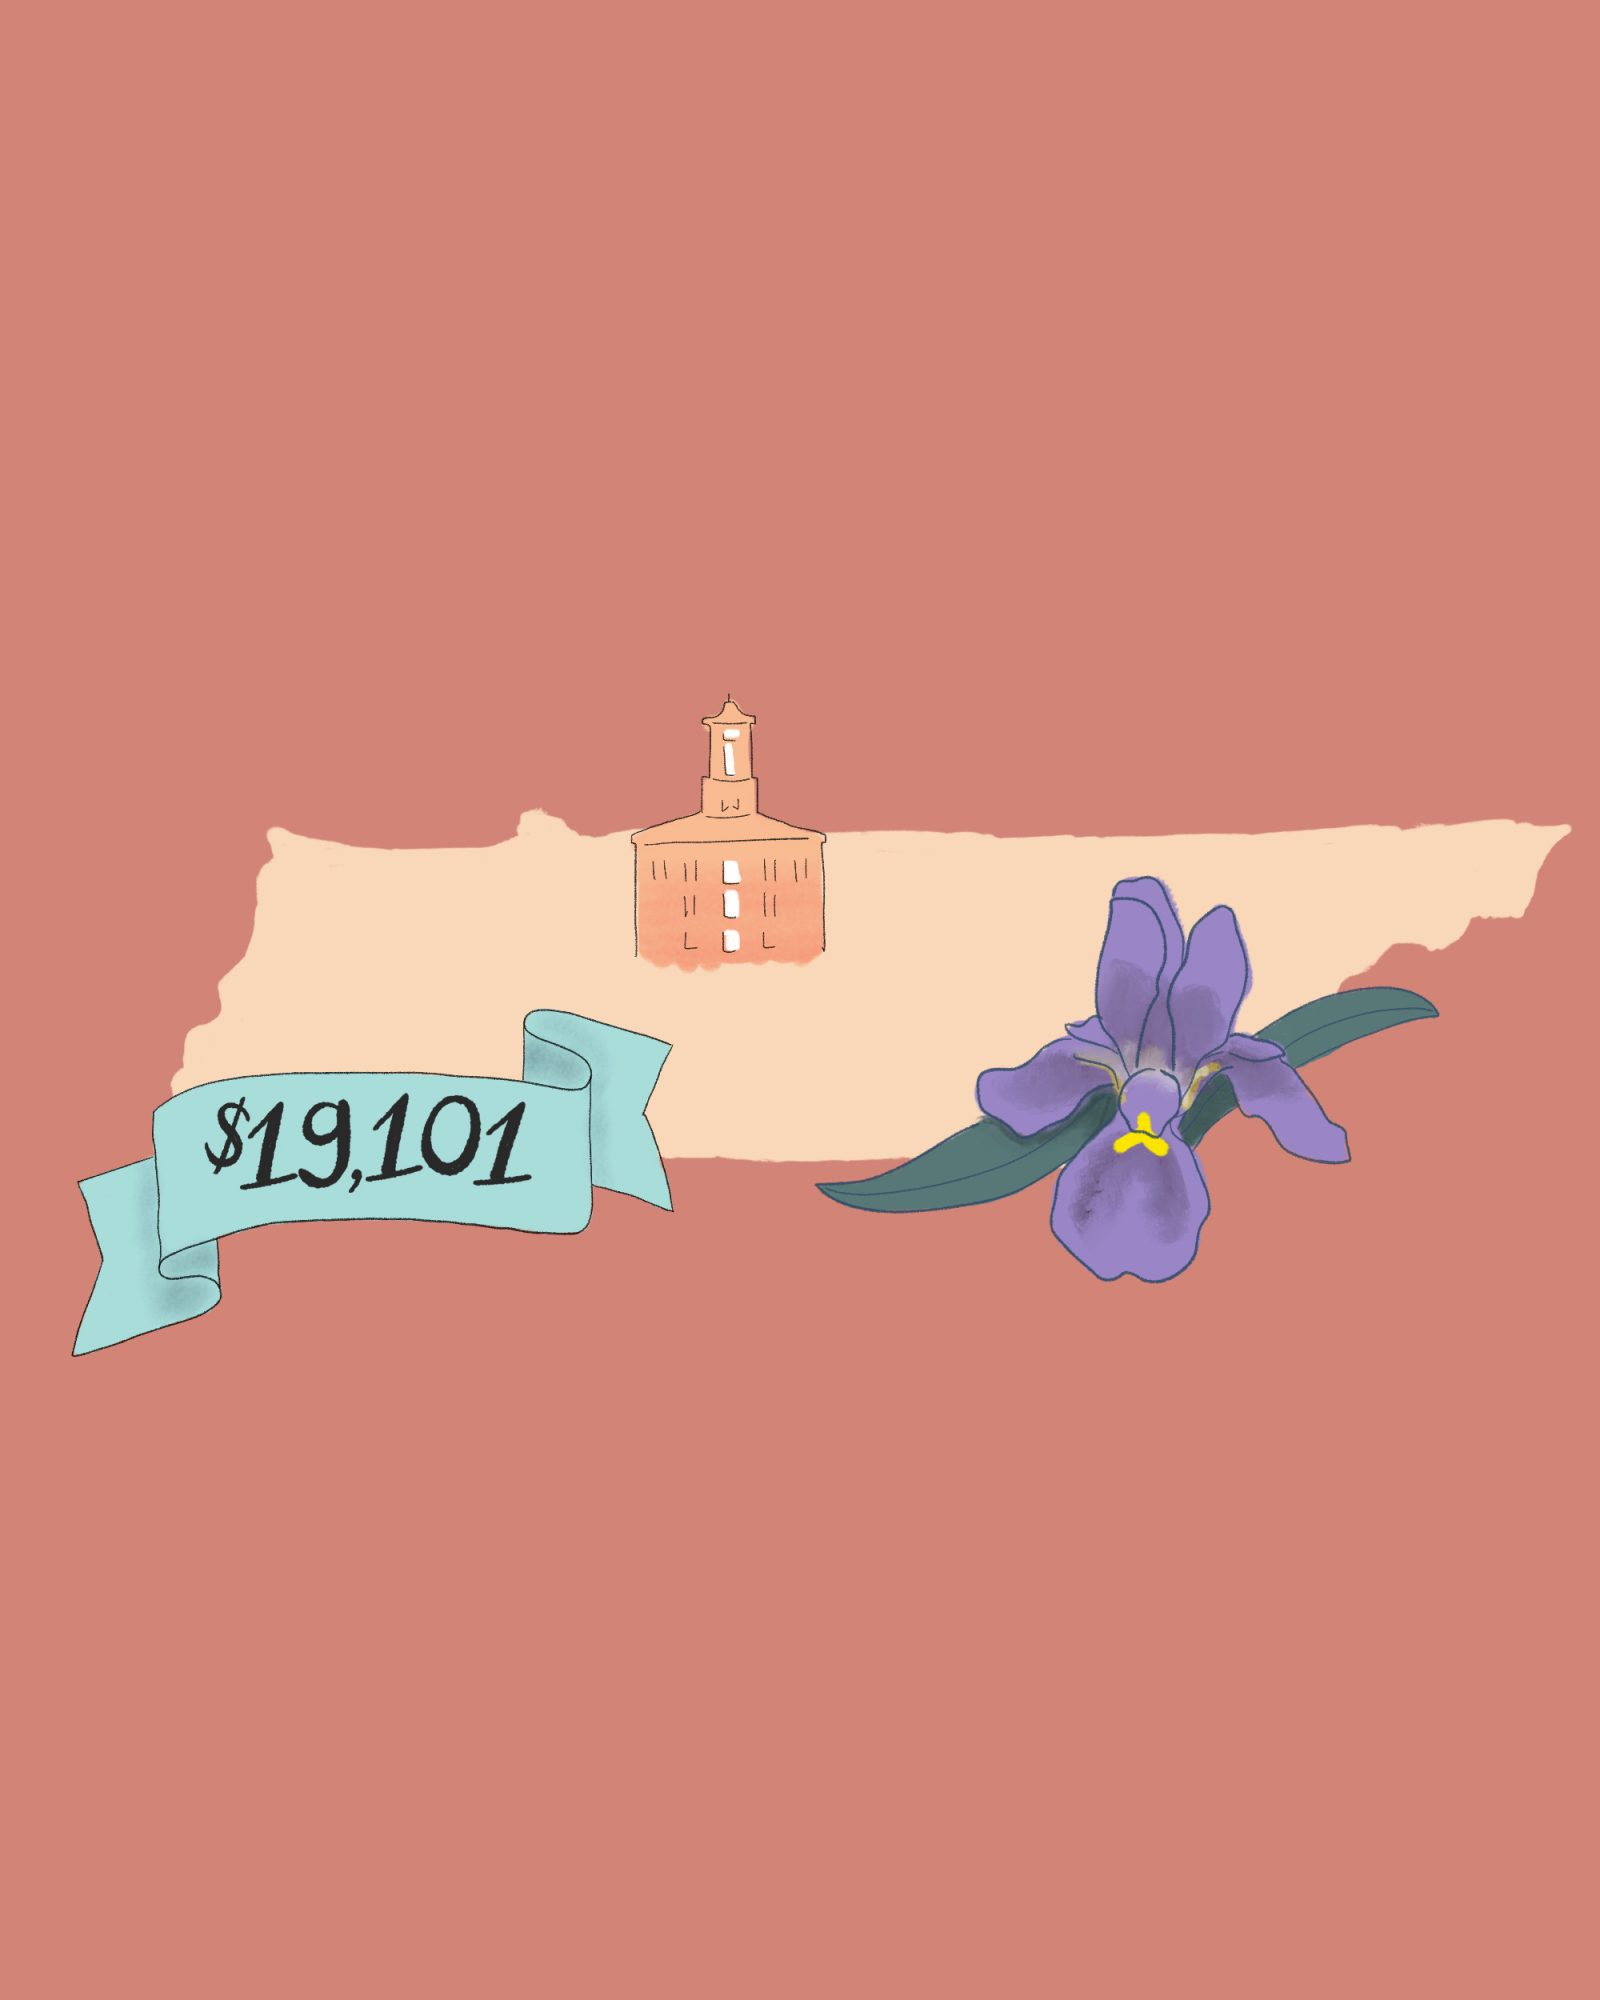 state wedding costs illustration tennessee